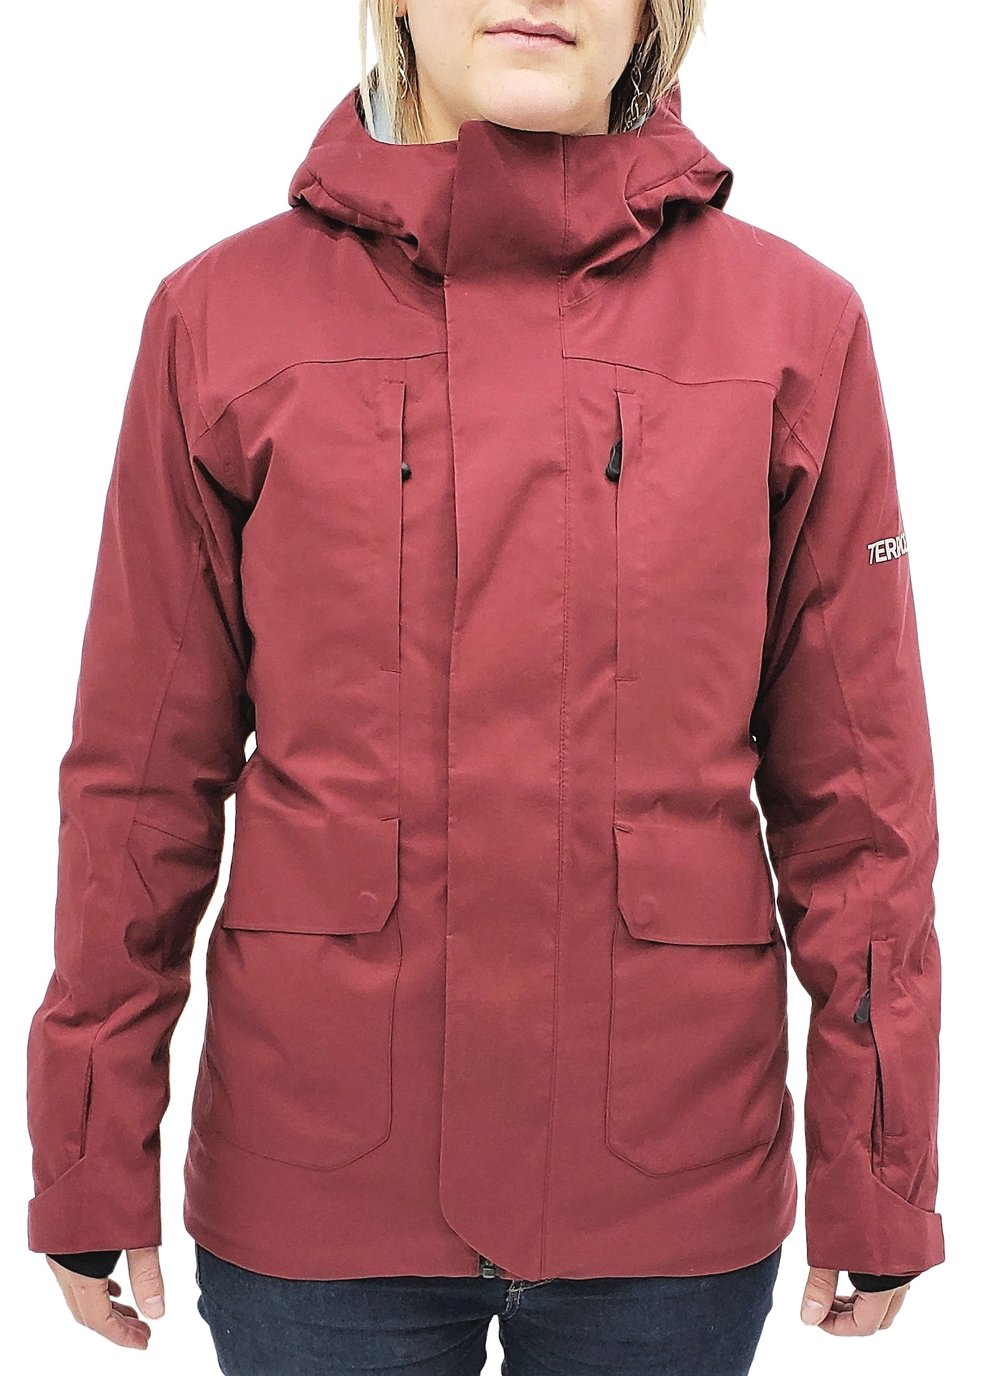 Women's Huntington 2L Insulated Jacket (Berry)